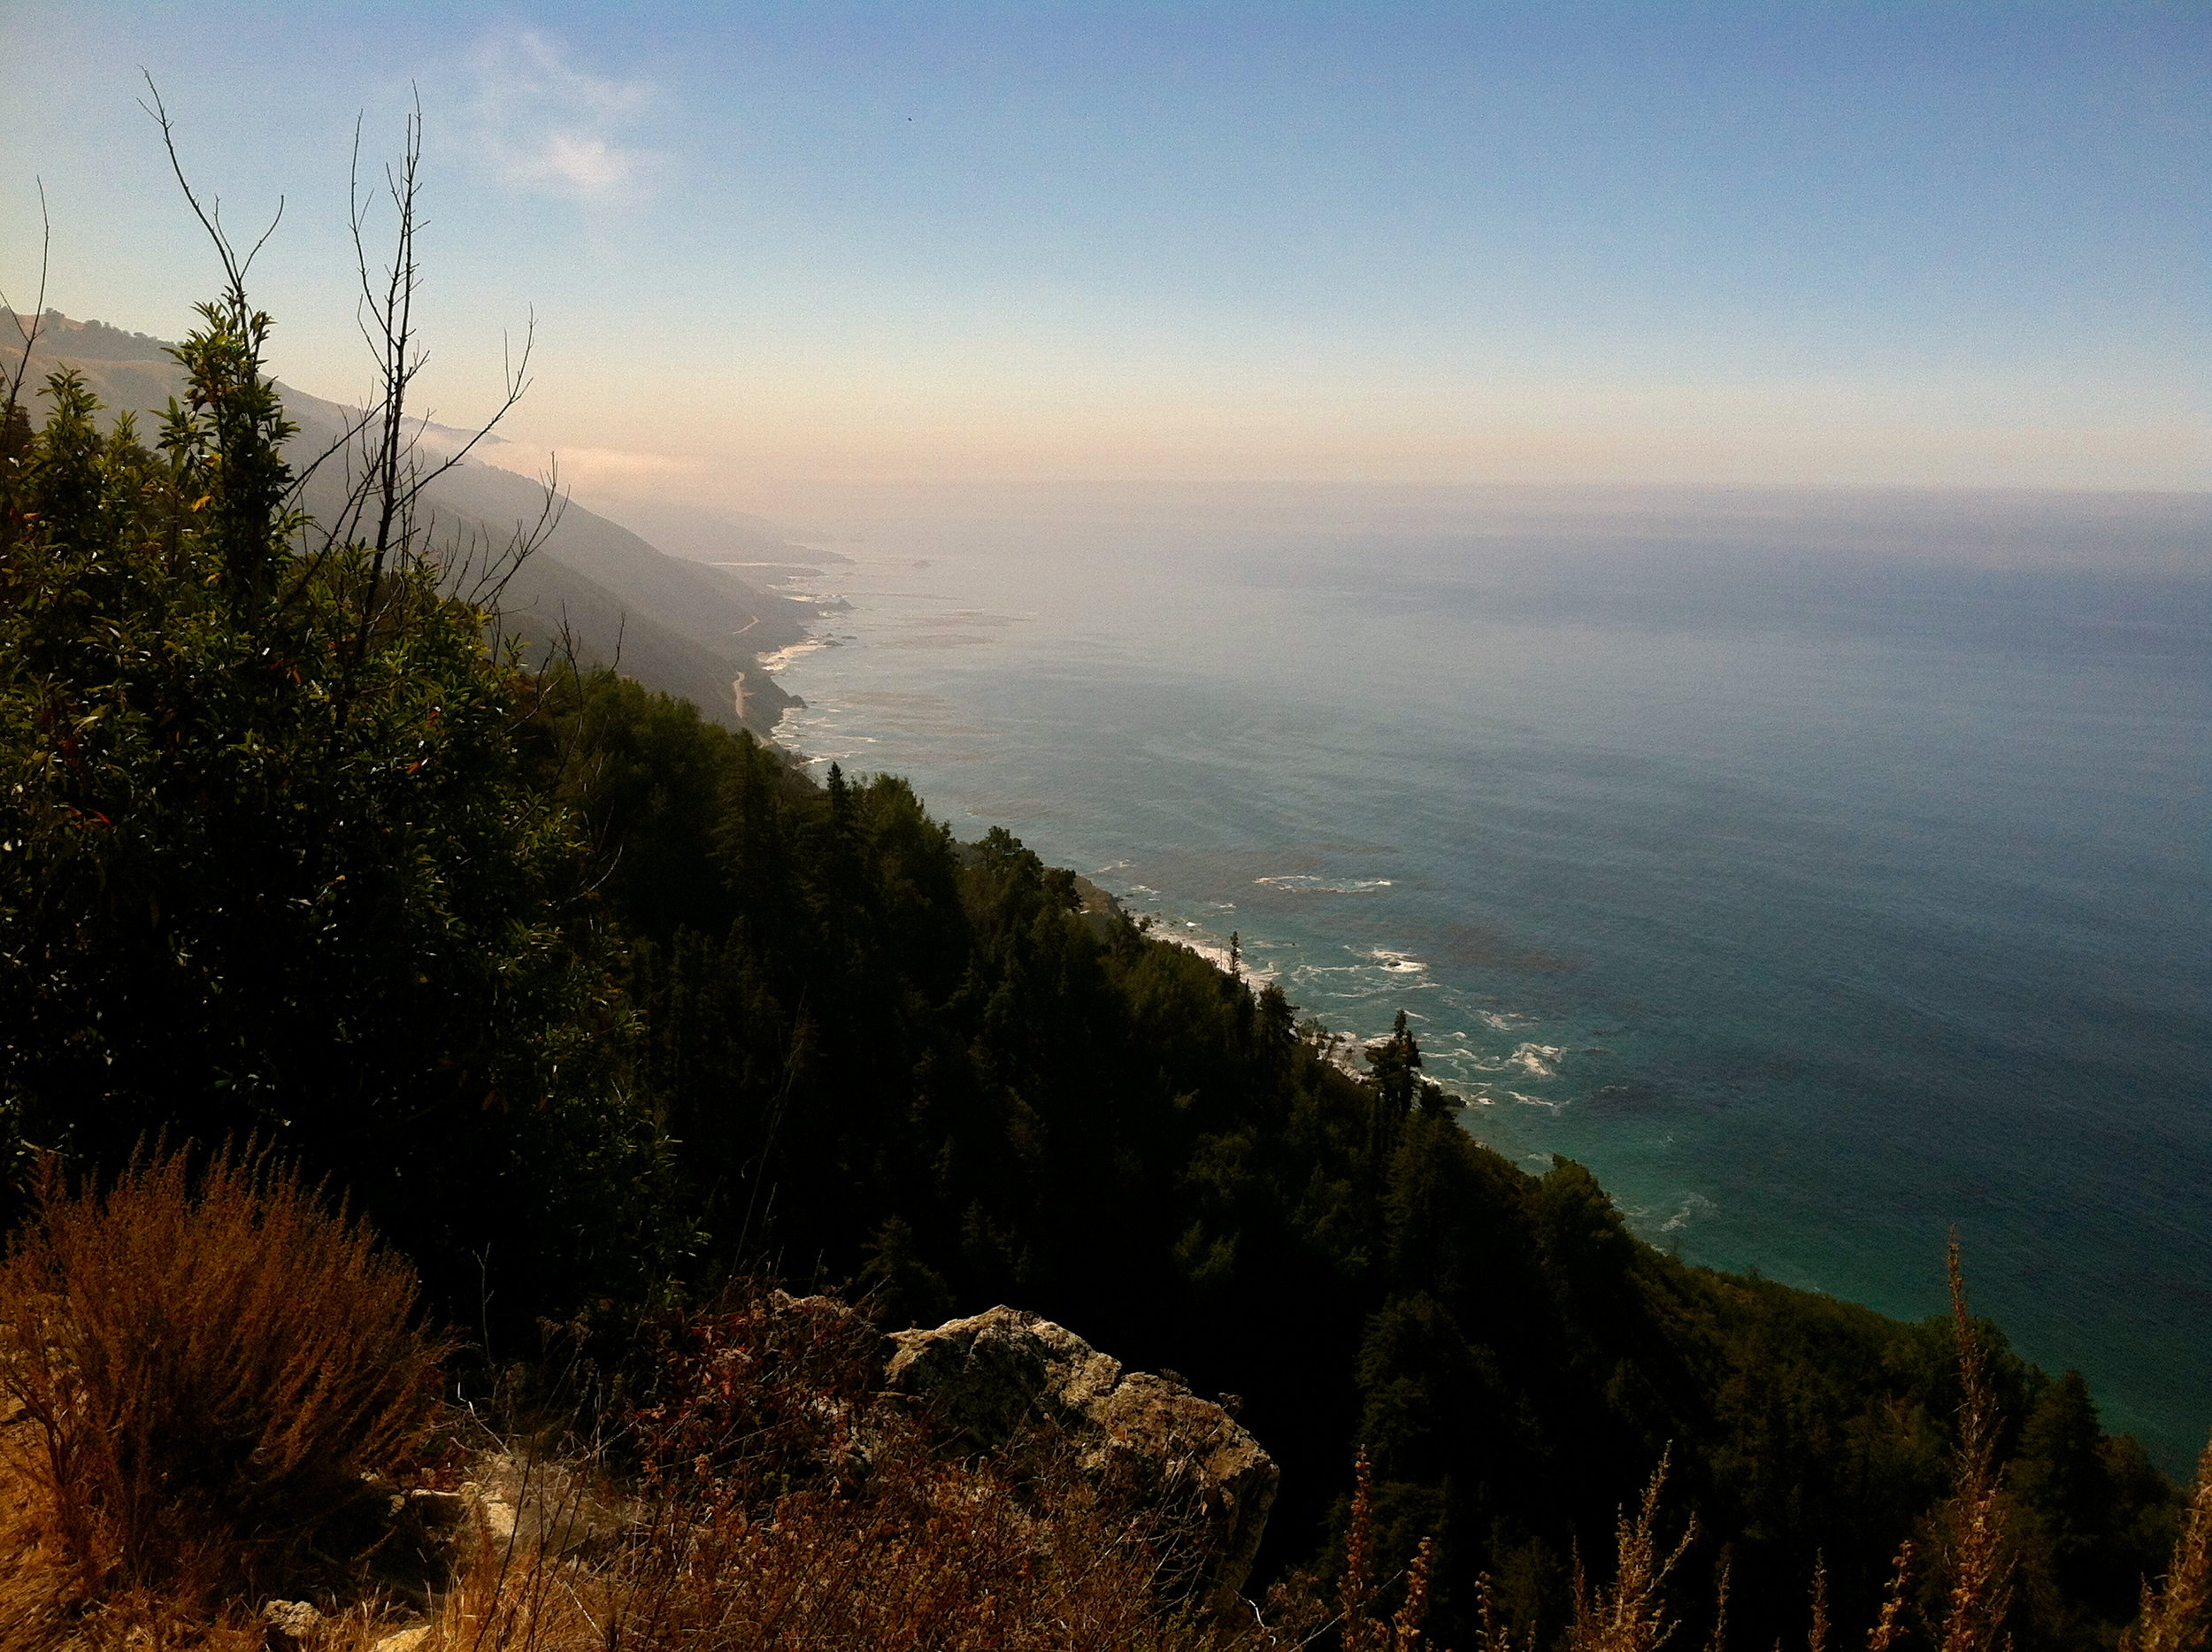 One of my pictures of Big Sur.